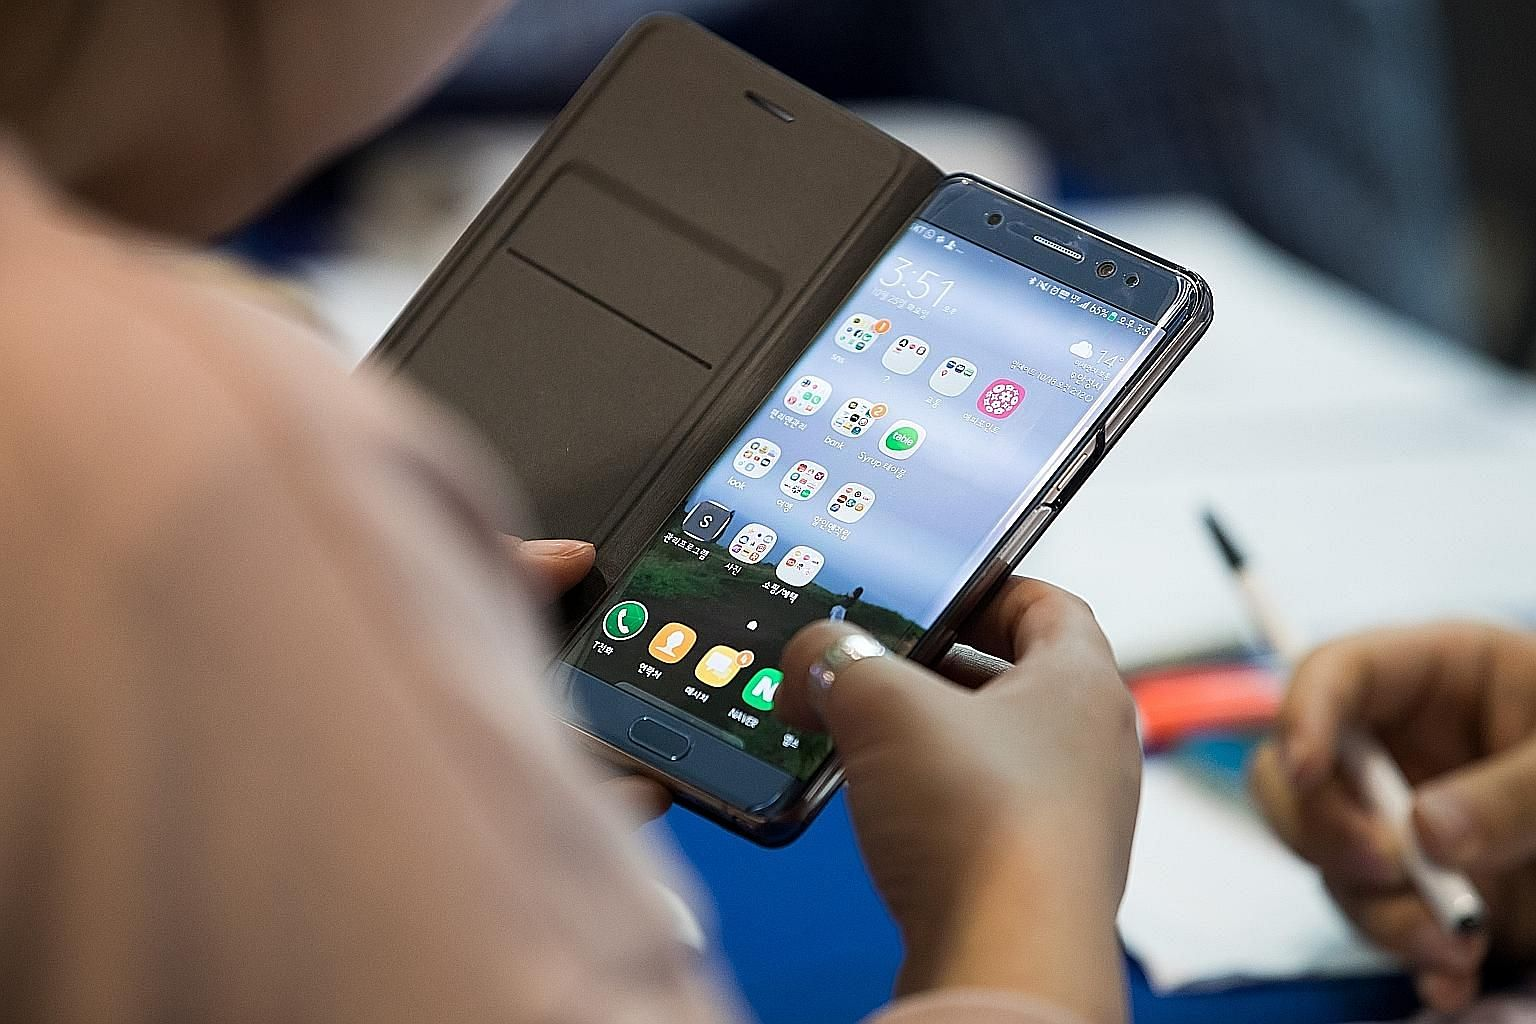 Not all cases for smartphones are made equal. Some merely prevent scratches, while the protection provided by others can meet rigorous military standards.